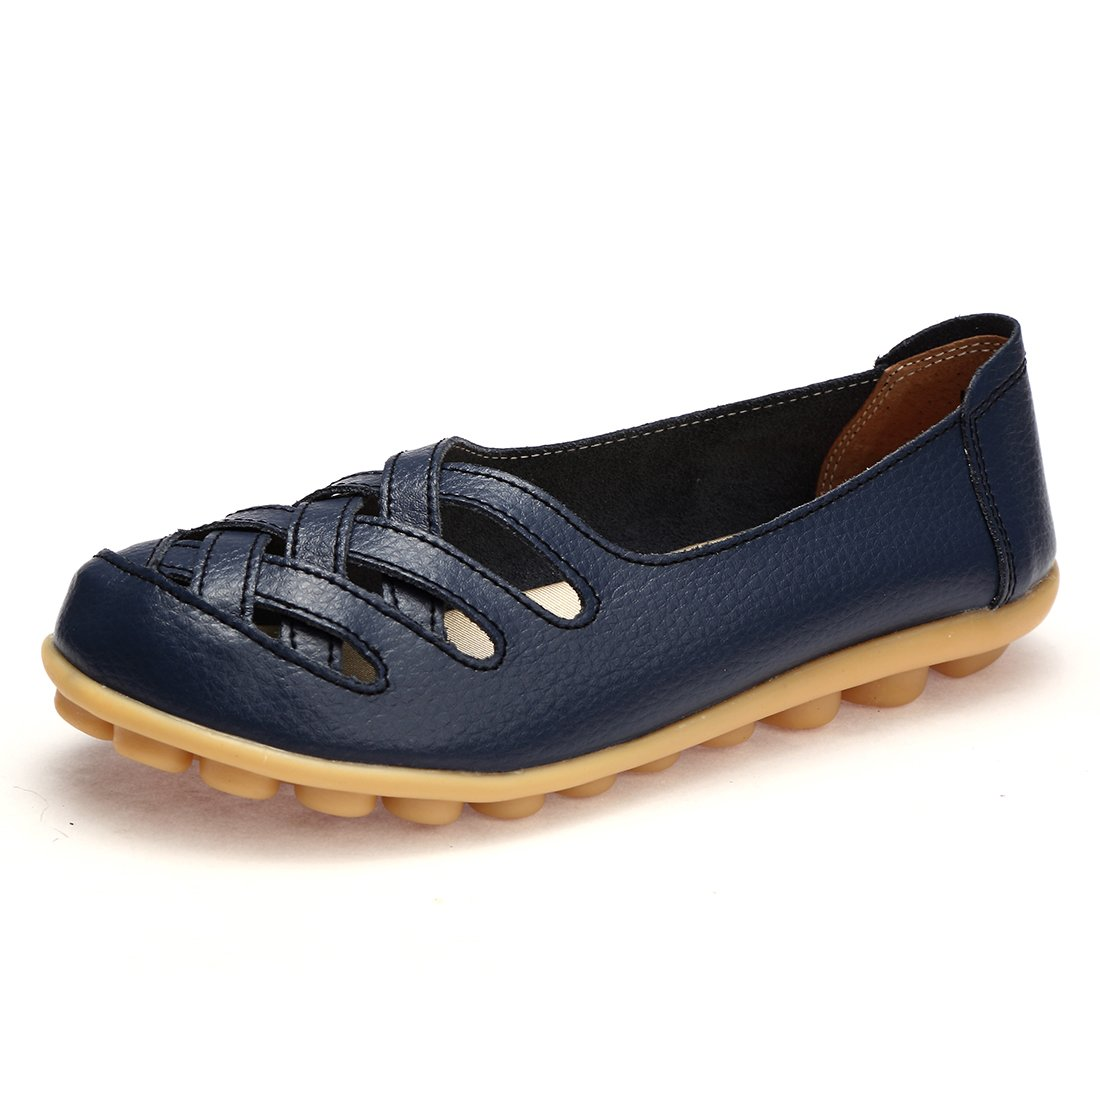 BTDREAM Women's Leather Slip-on Loafers Moccasins Casual Flat Driving Boat Shoes with Memory Foam Insole Navy Size 38